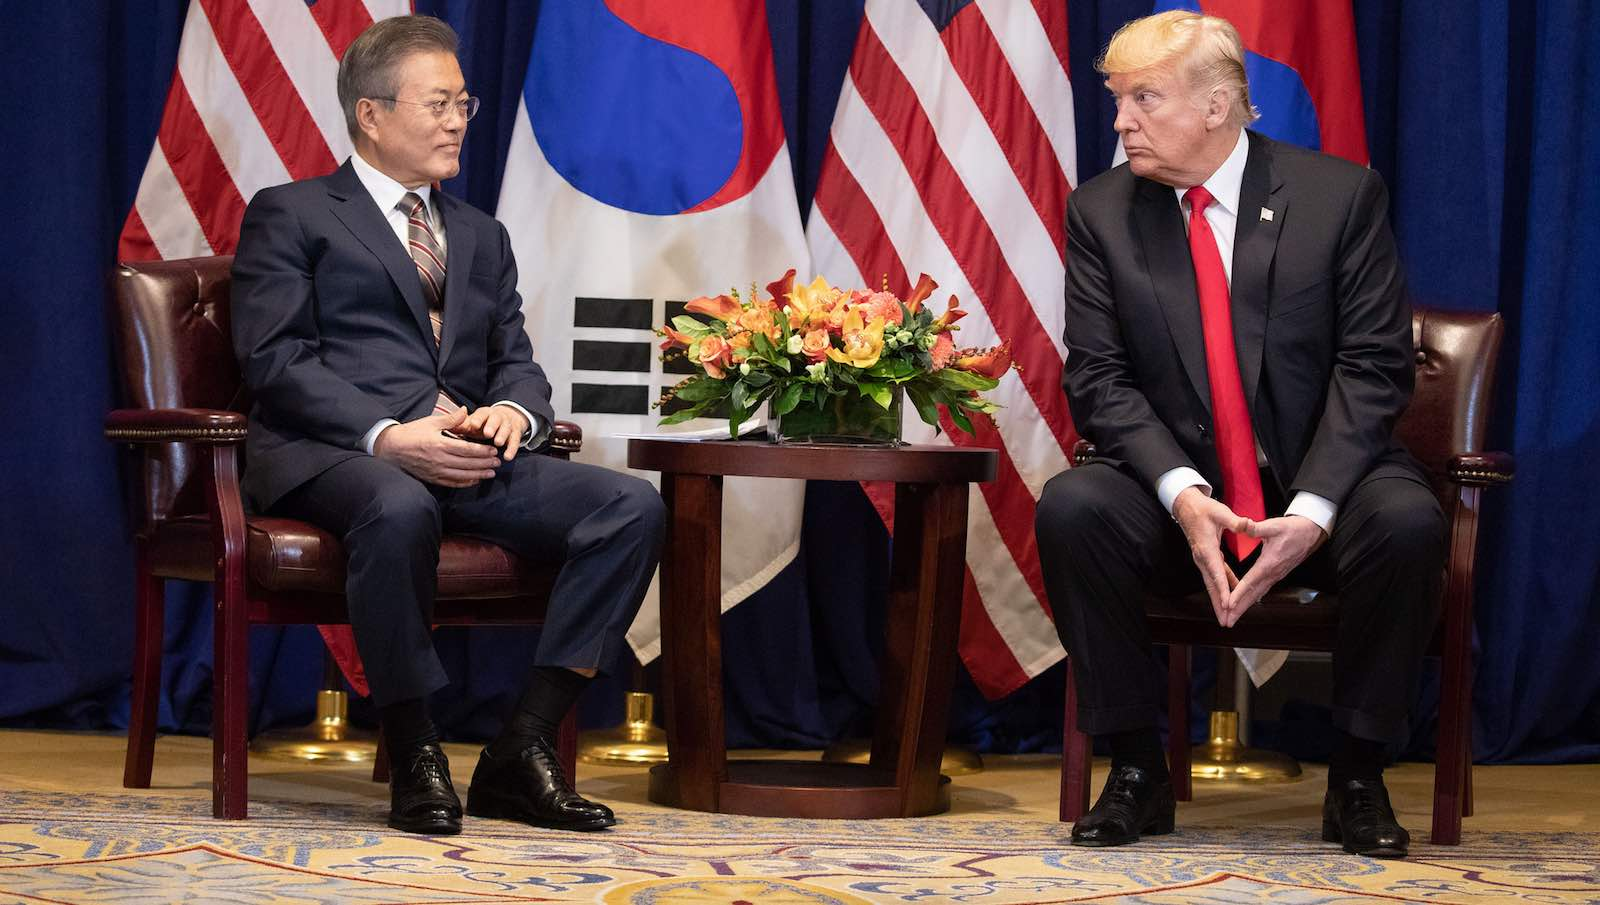 US President Donald Trump and South Korea's Moon Jae-in on 24 September 2018 in New York (Photo: Shealah Craighead/White House)